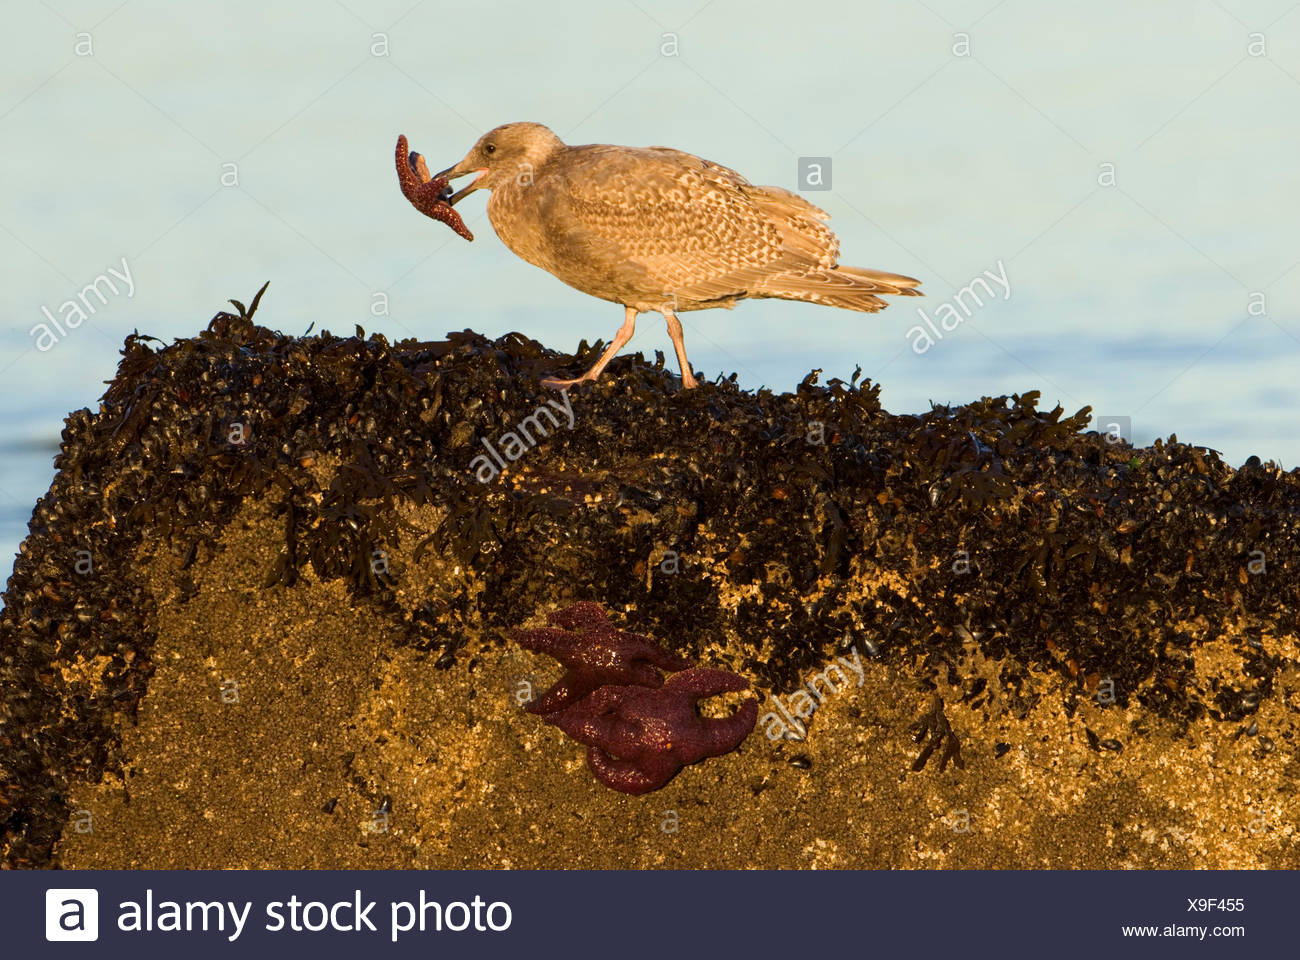 A gull, Laridae with a purple starfish, Pisaster ochraceus in its beak. - Stock Image